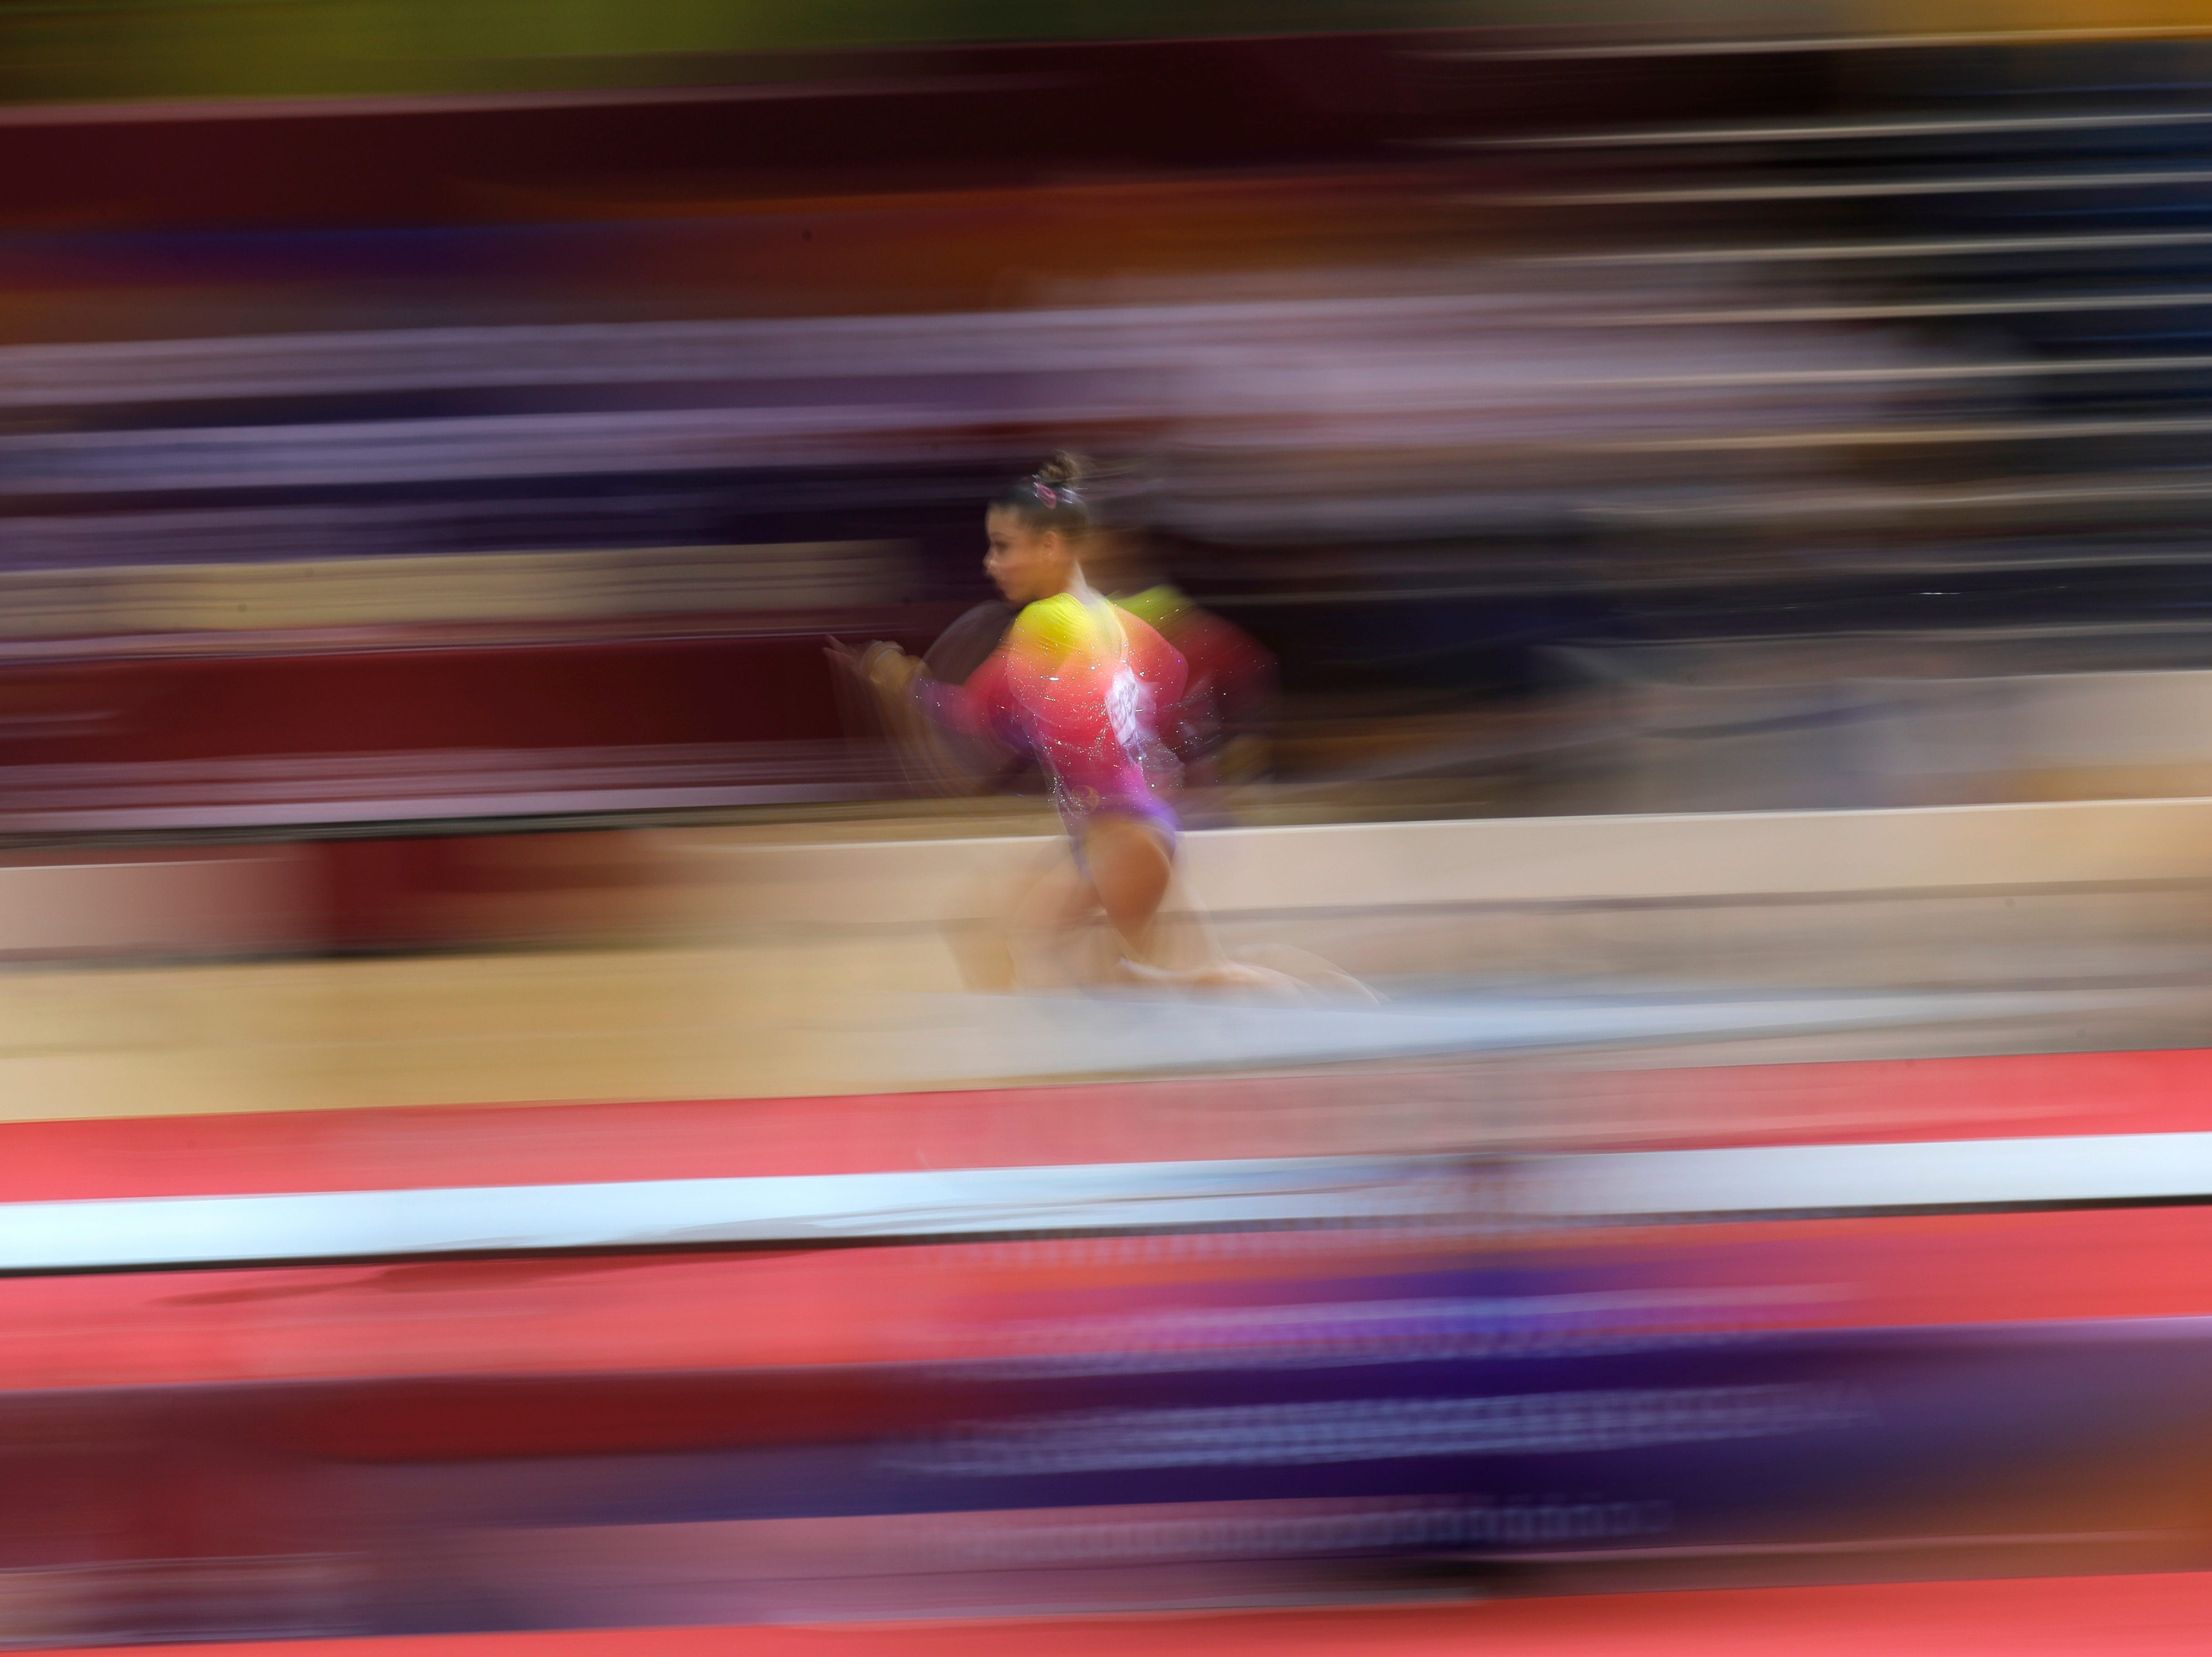 Brazil's Flavia Saraiva picks up speed as she runs toward the vault during qualifying sessions for the Gymnastics World Chamionships at the Aspire Dome in Doha, Qatar, Sunday, Oct. 28, 2018.